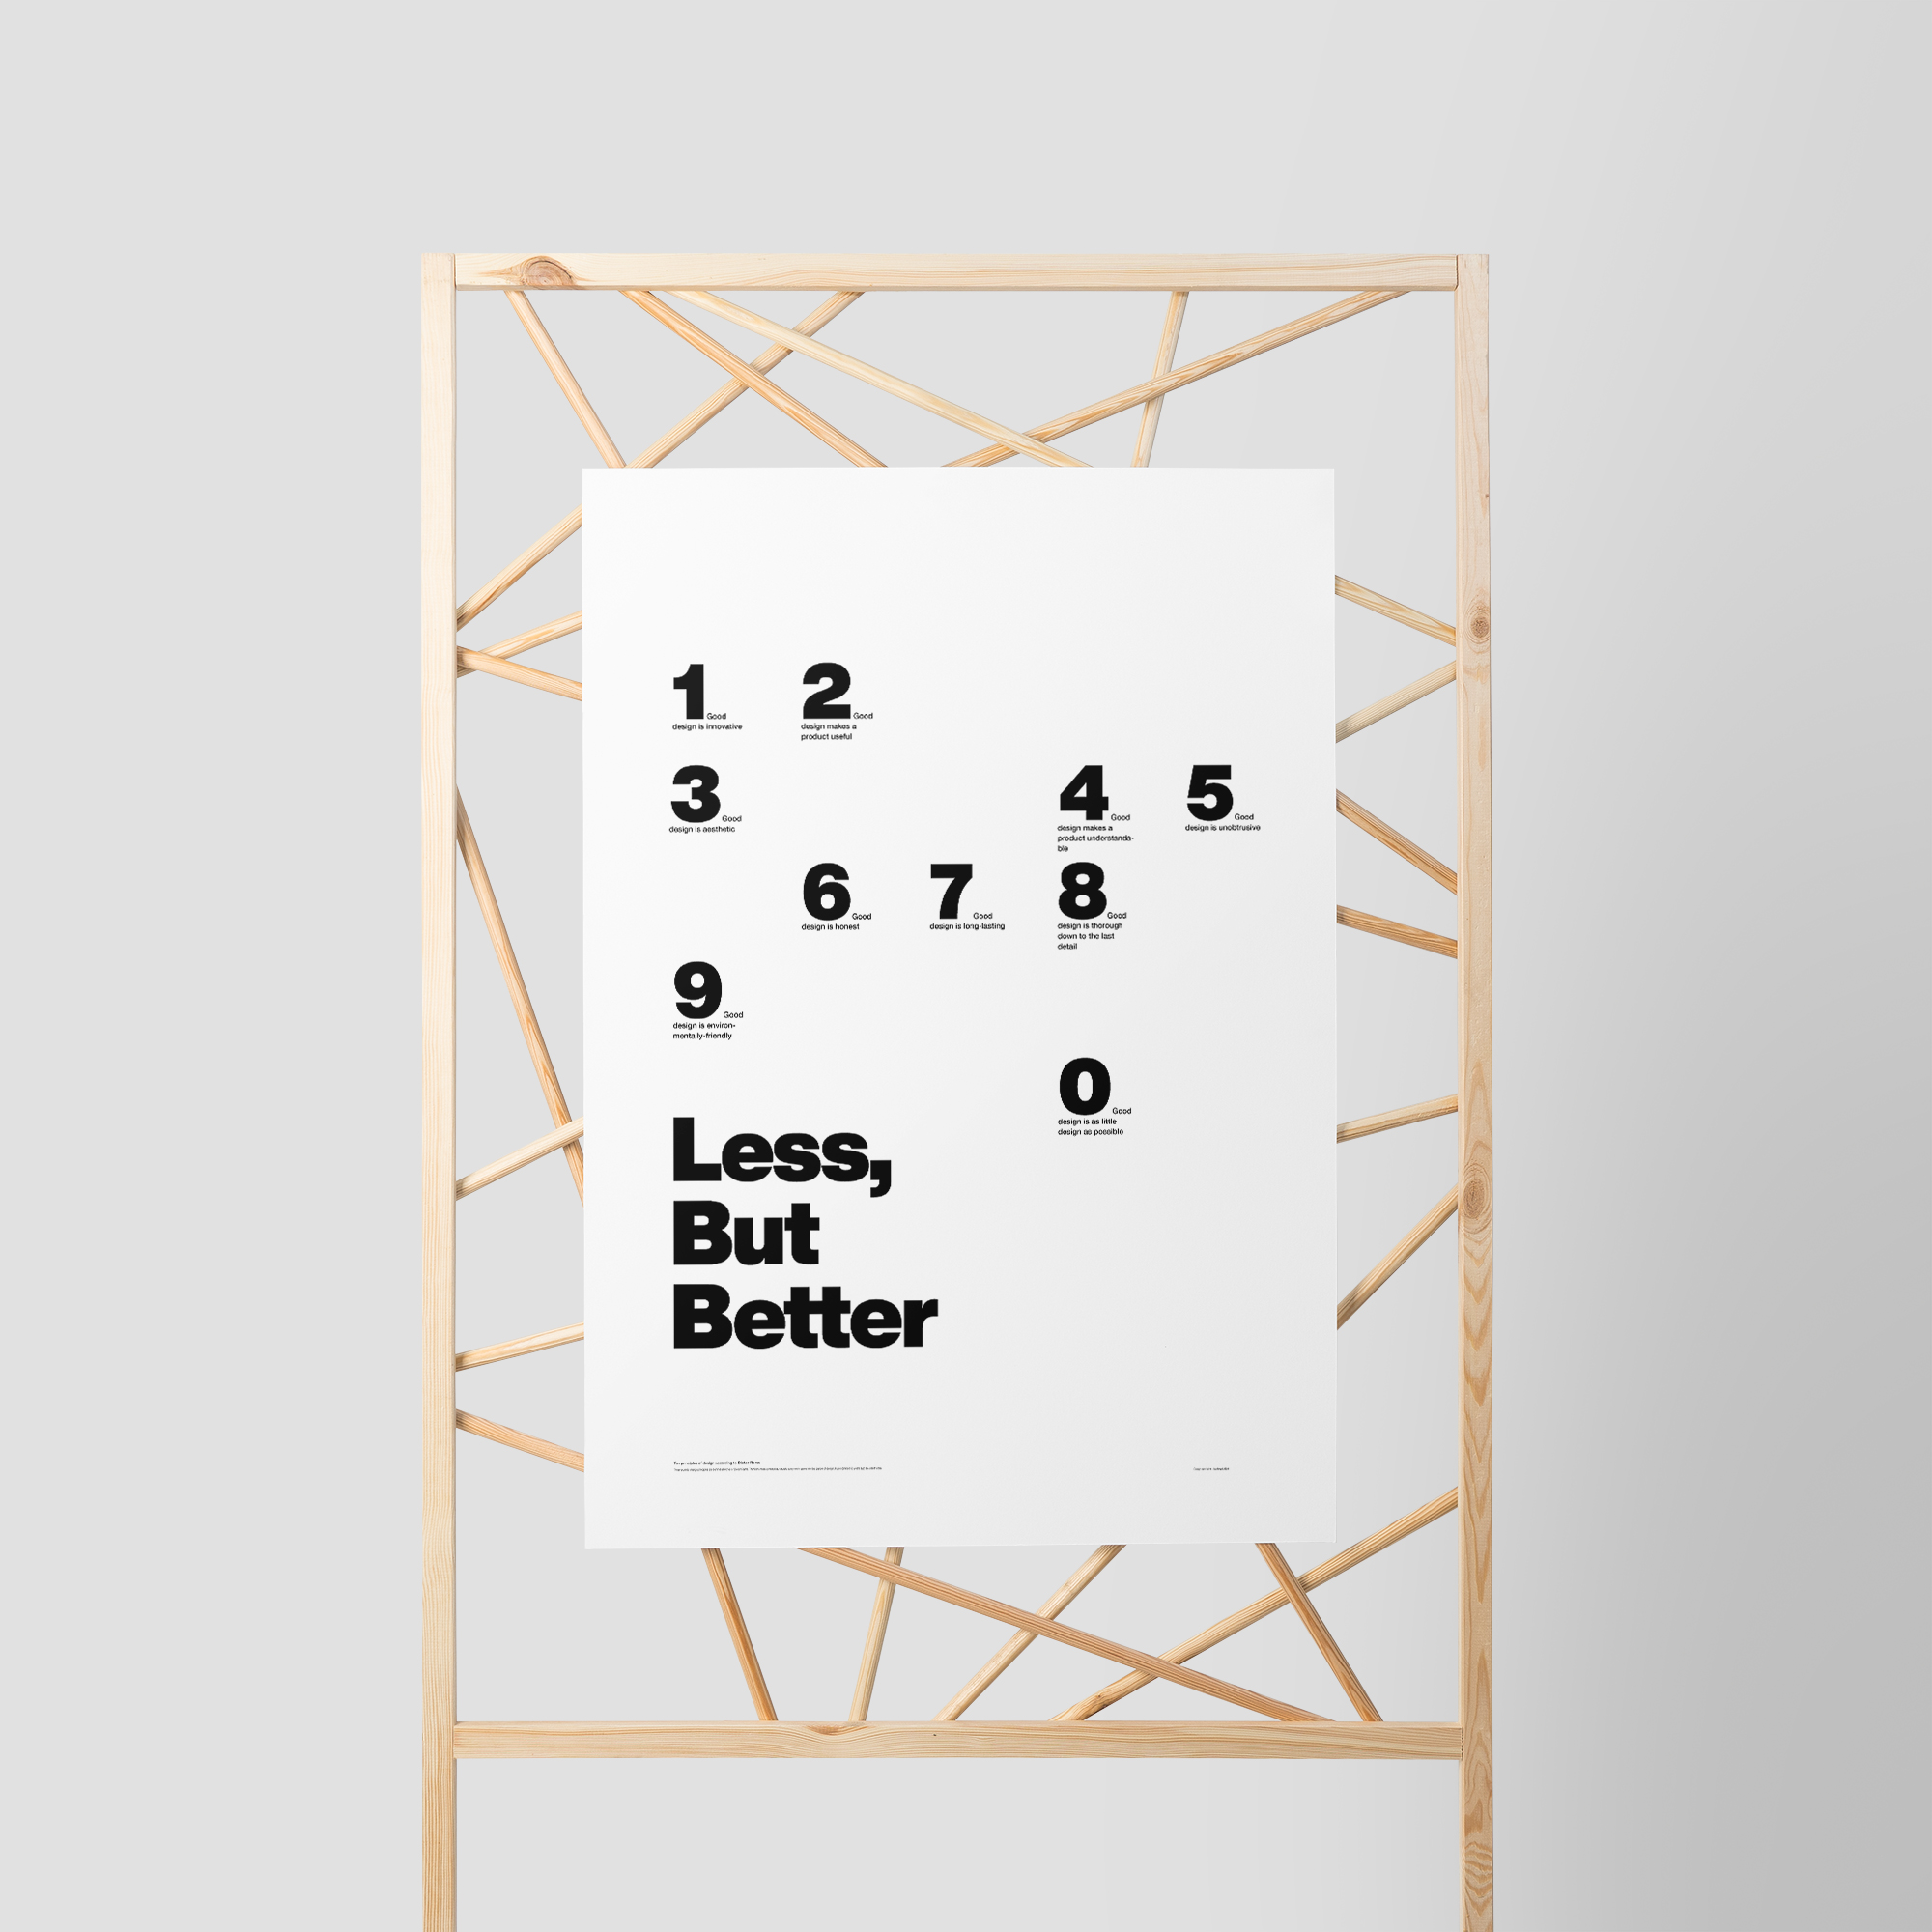 Less but better – 10 principles for good design – by Dieter Rams